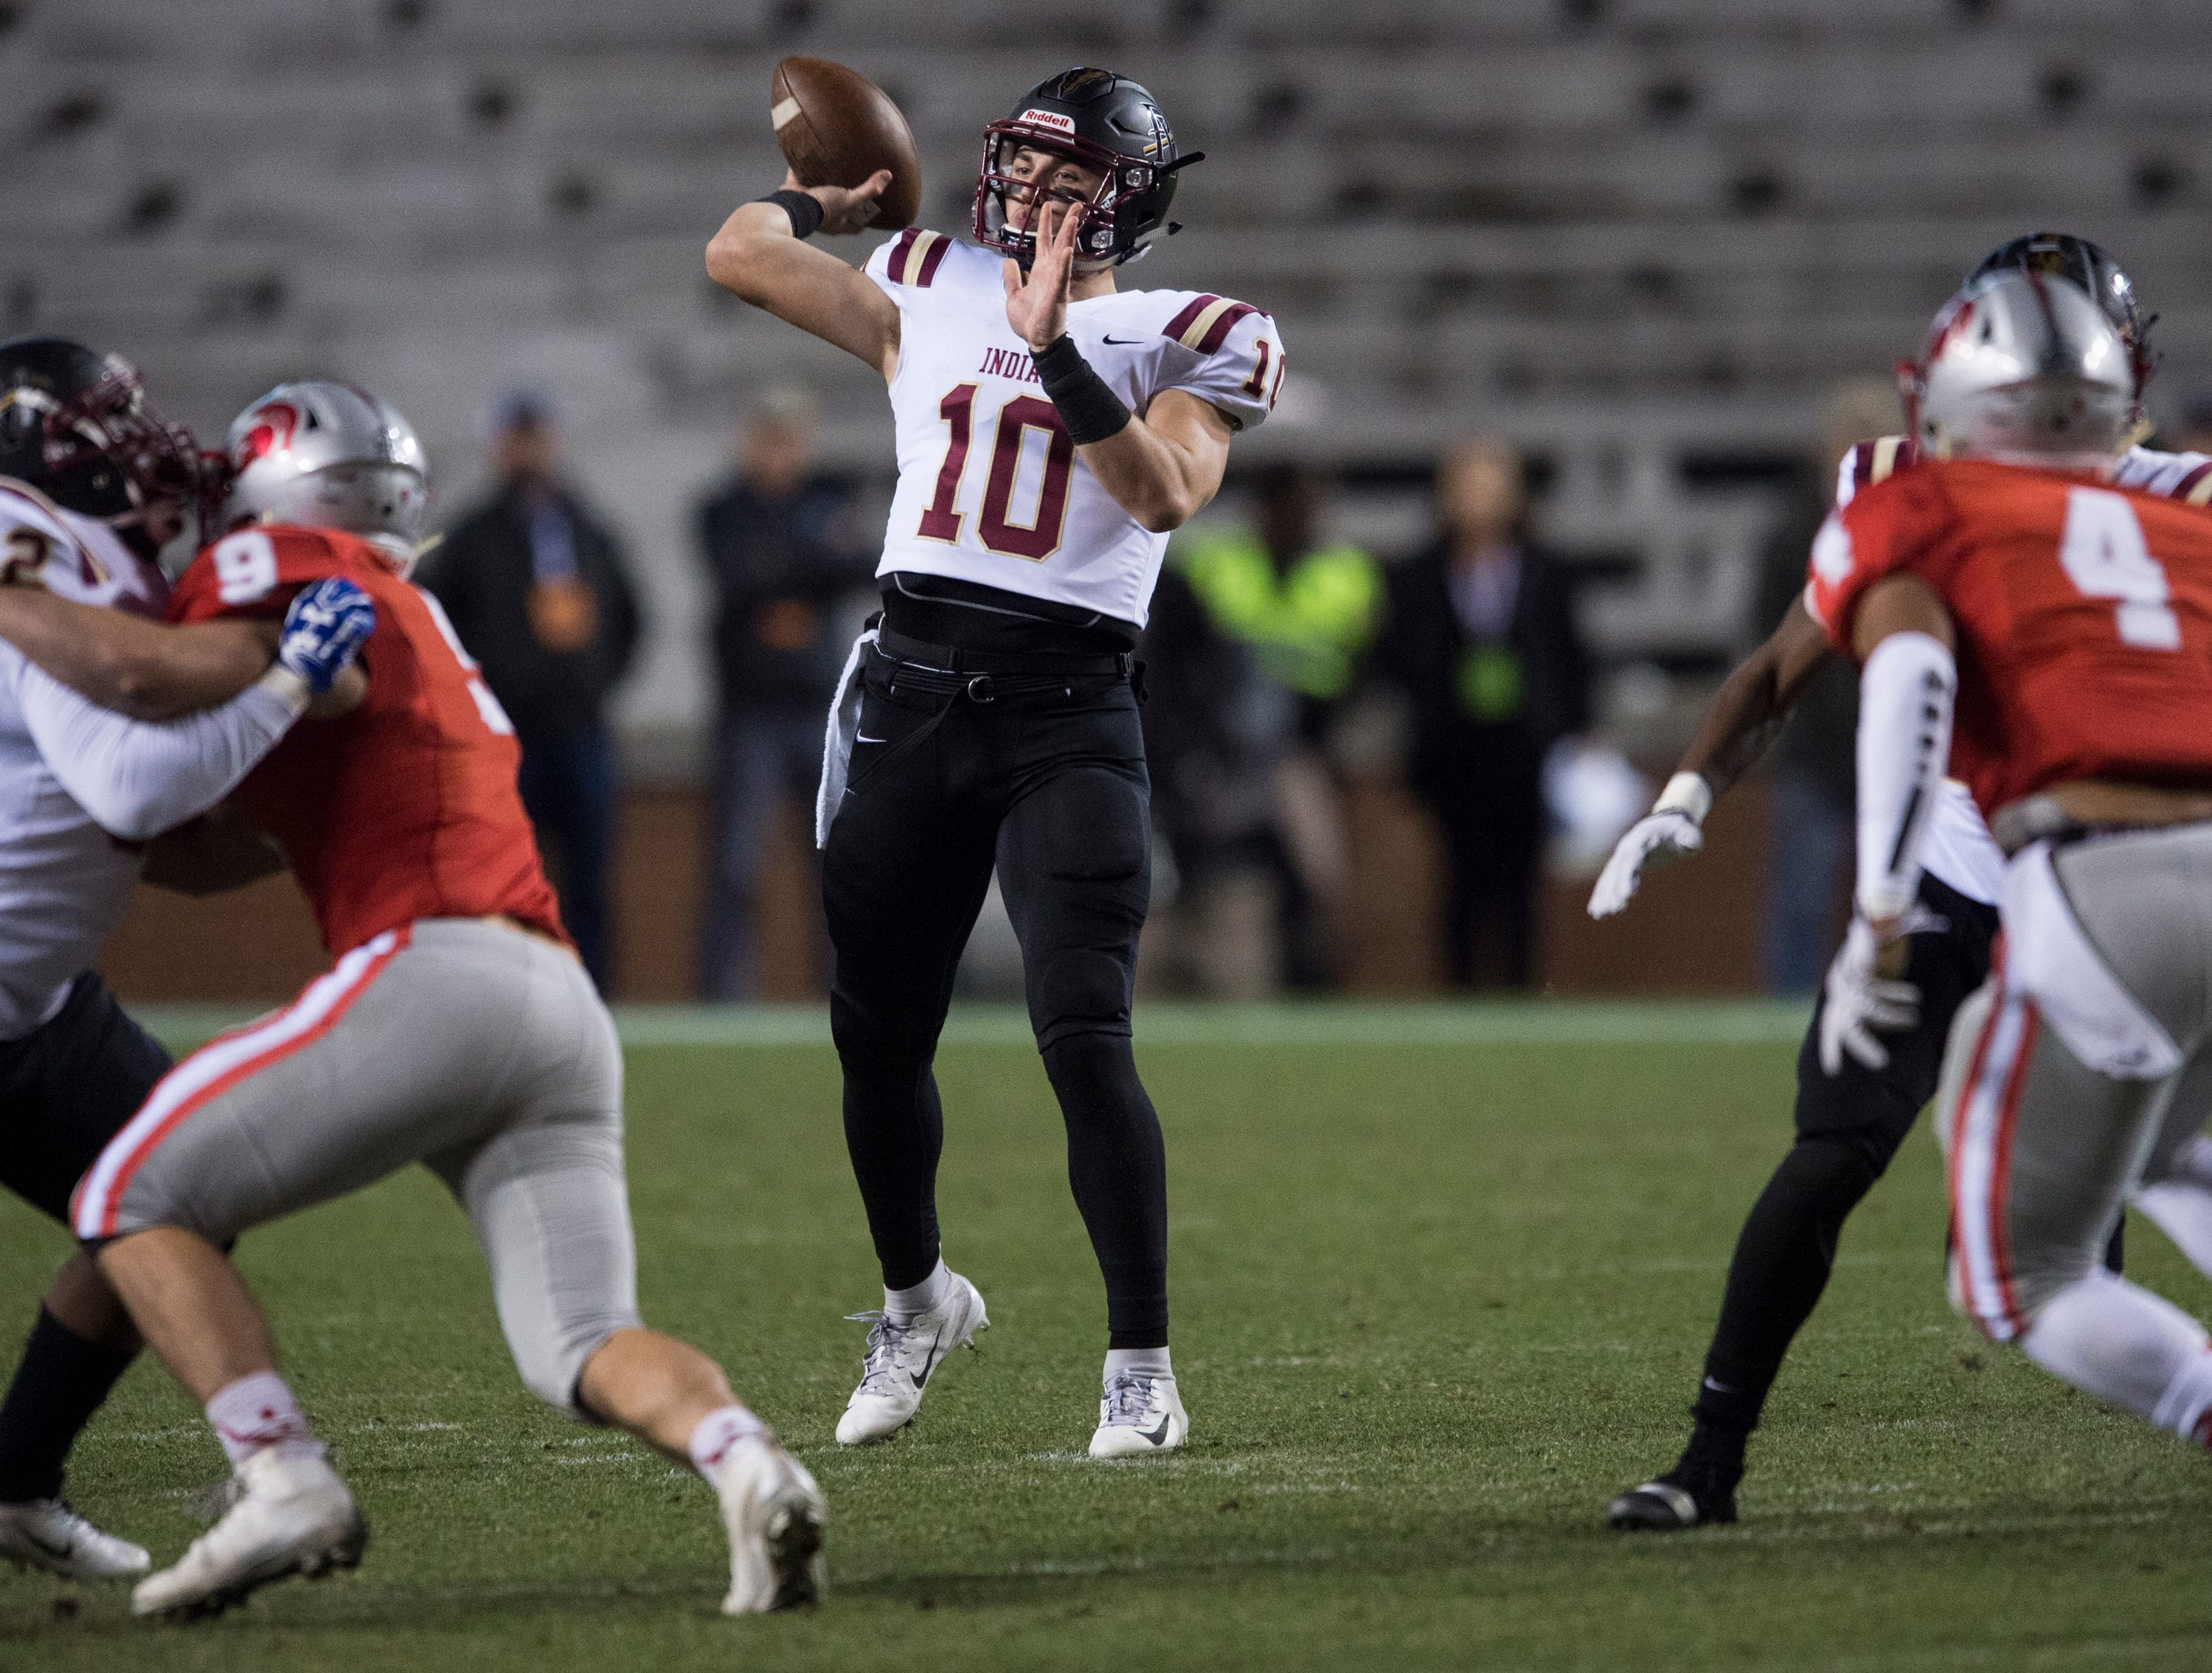 Pinson Valley's Bo Nix (10) throws the ball during the Class 6A state championship at Jordan-Hare Stadium in Auburn, Ala., on Friday, Dec. 7, 2018. Pinson Valley defeated Saraland 26-17.